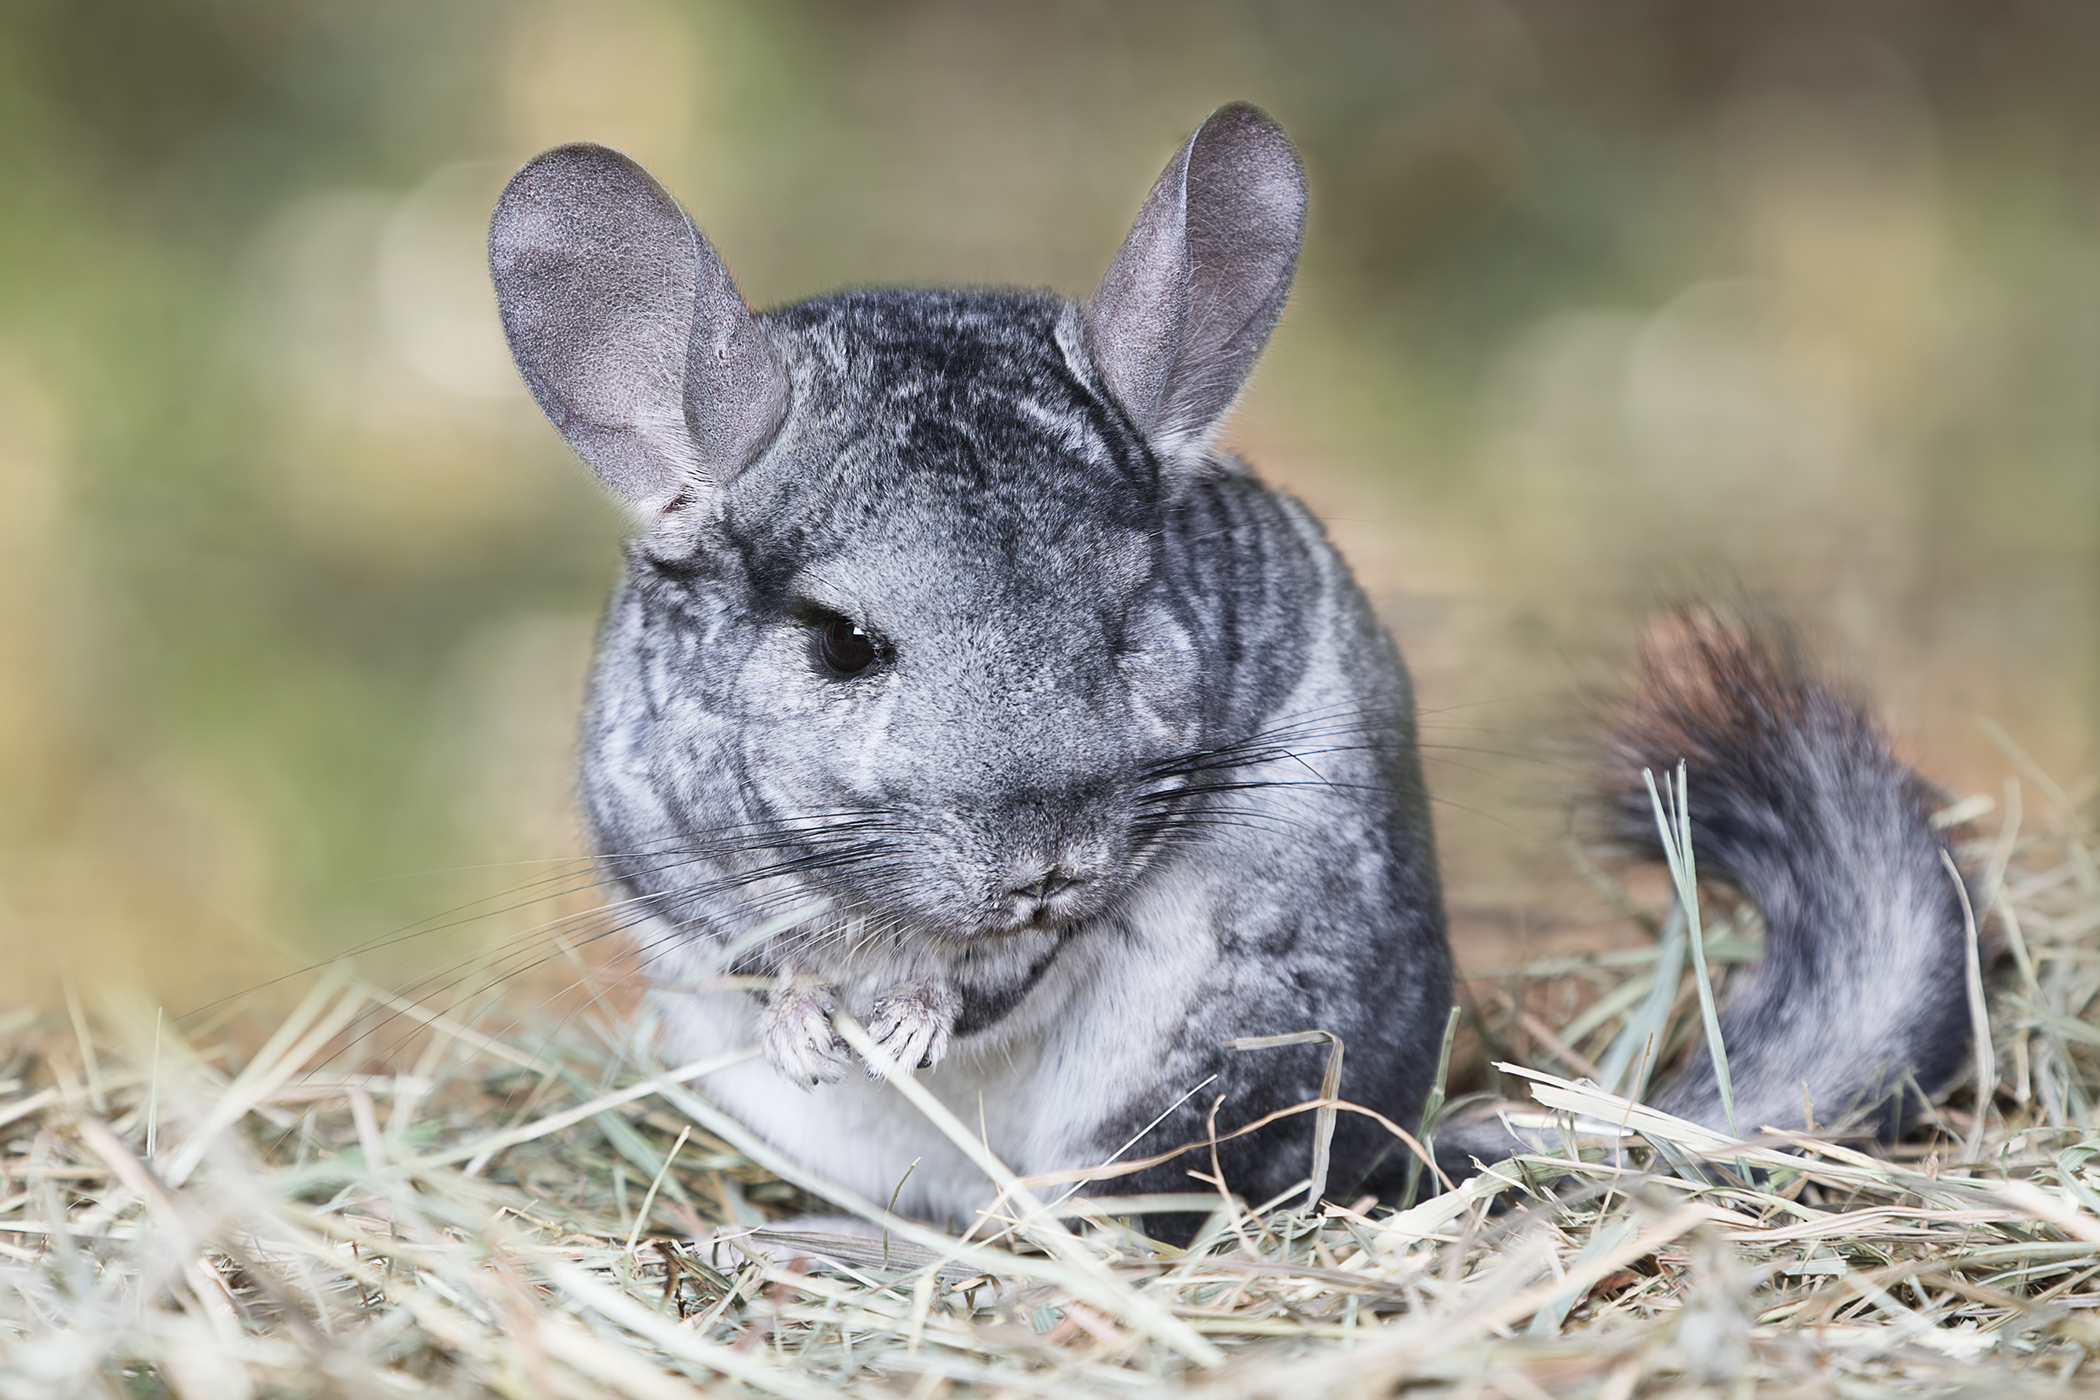 Inflammation of the Mammary Gland in Chinchillas